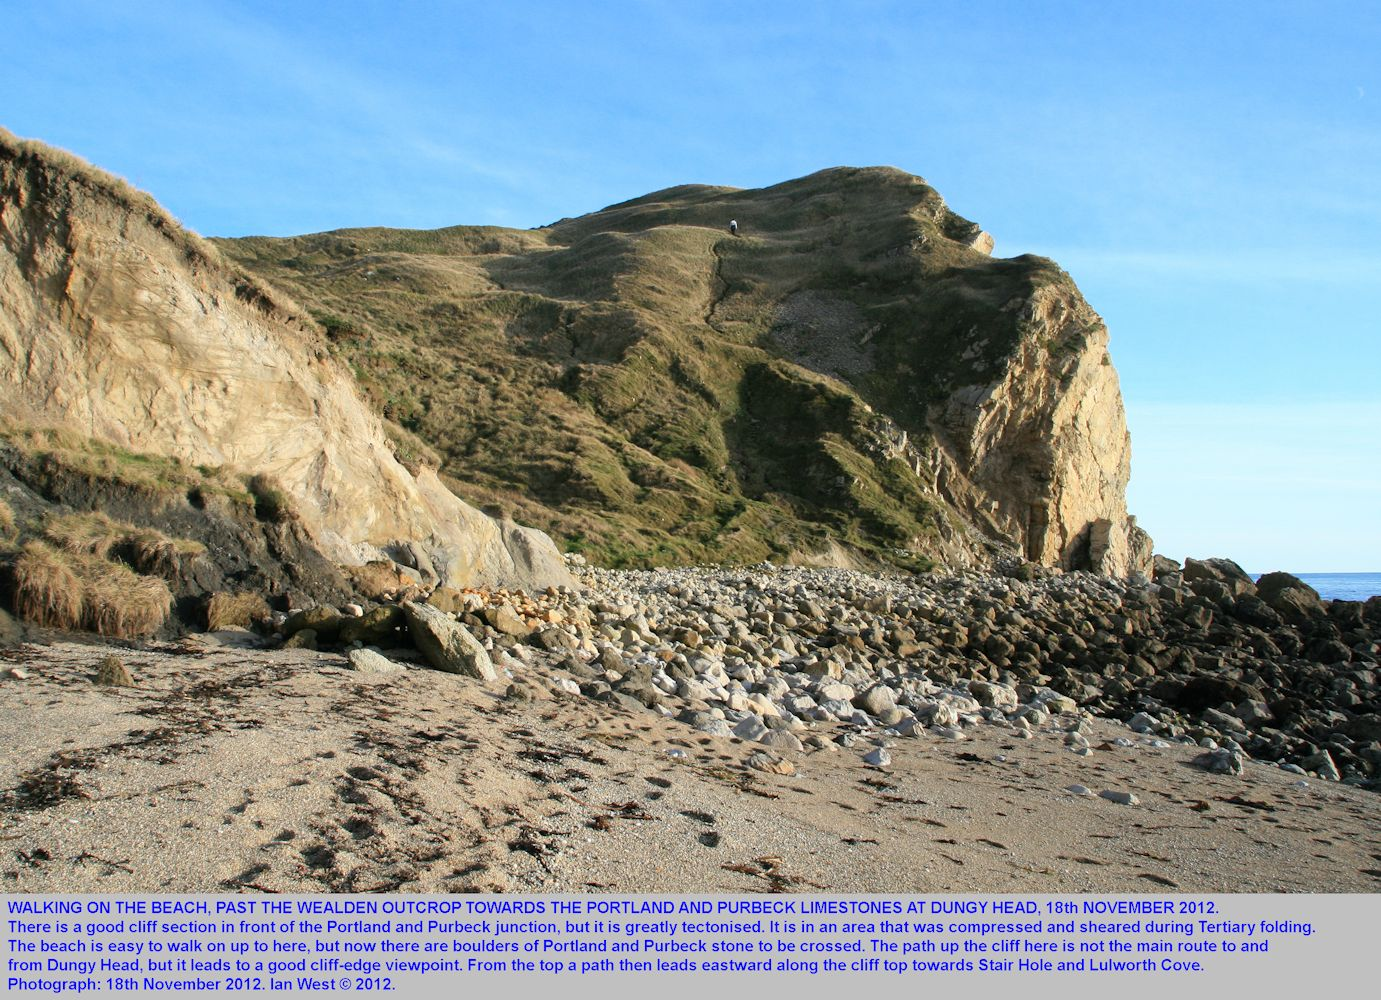 A view of Dungy Head with Portland and Purbeck limestones, seen from the beach at the Wealden outcrop, 18th November 2012